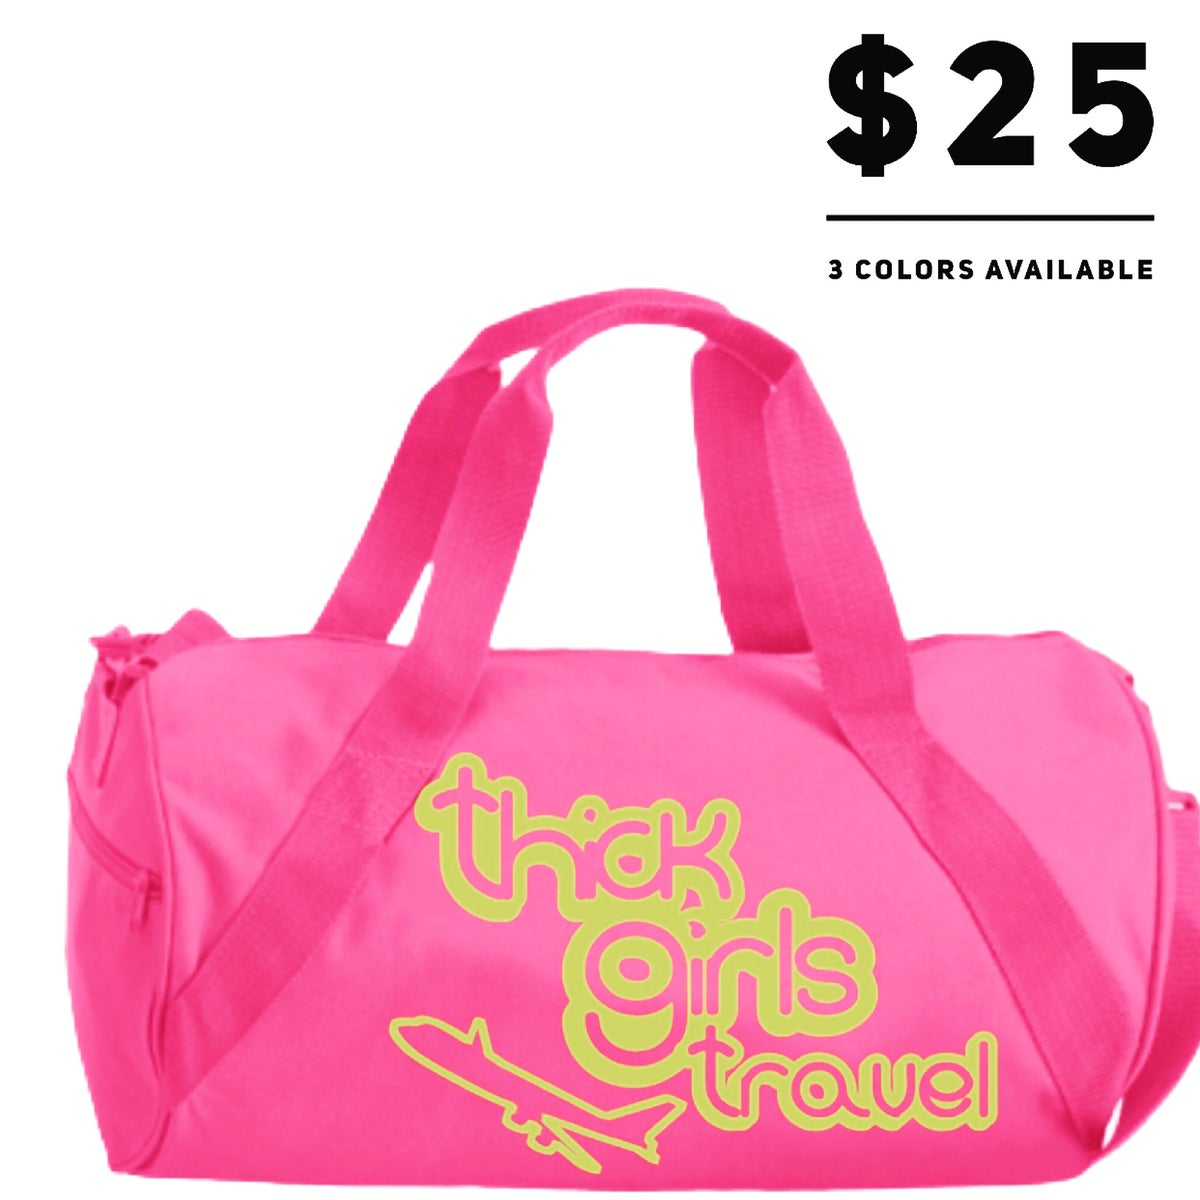 Image of Travel Carry-on (3 colors)